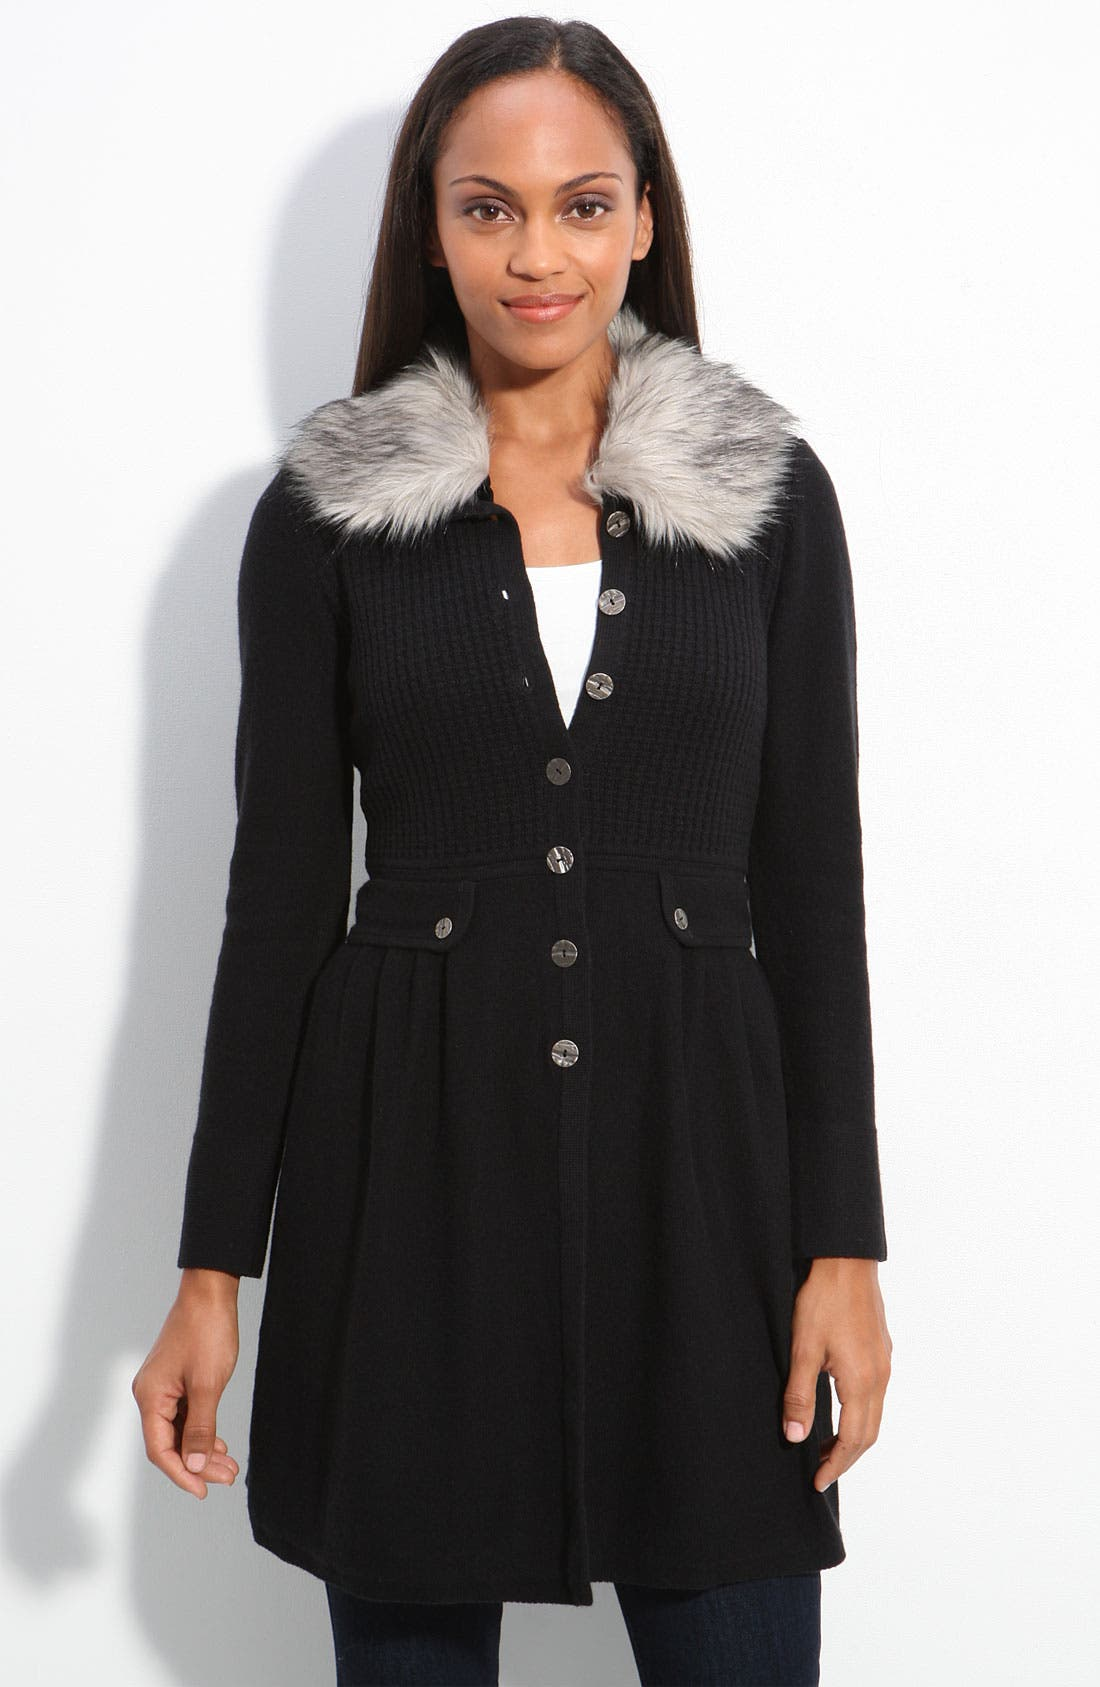 Main Image - Nic + Zoe Sweater Coat with Faux Fur Trim